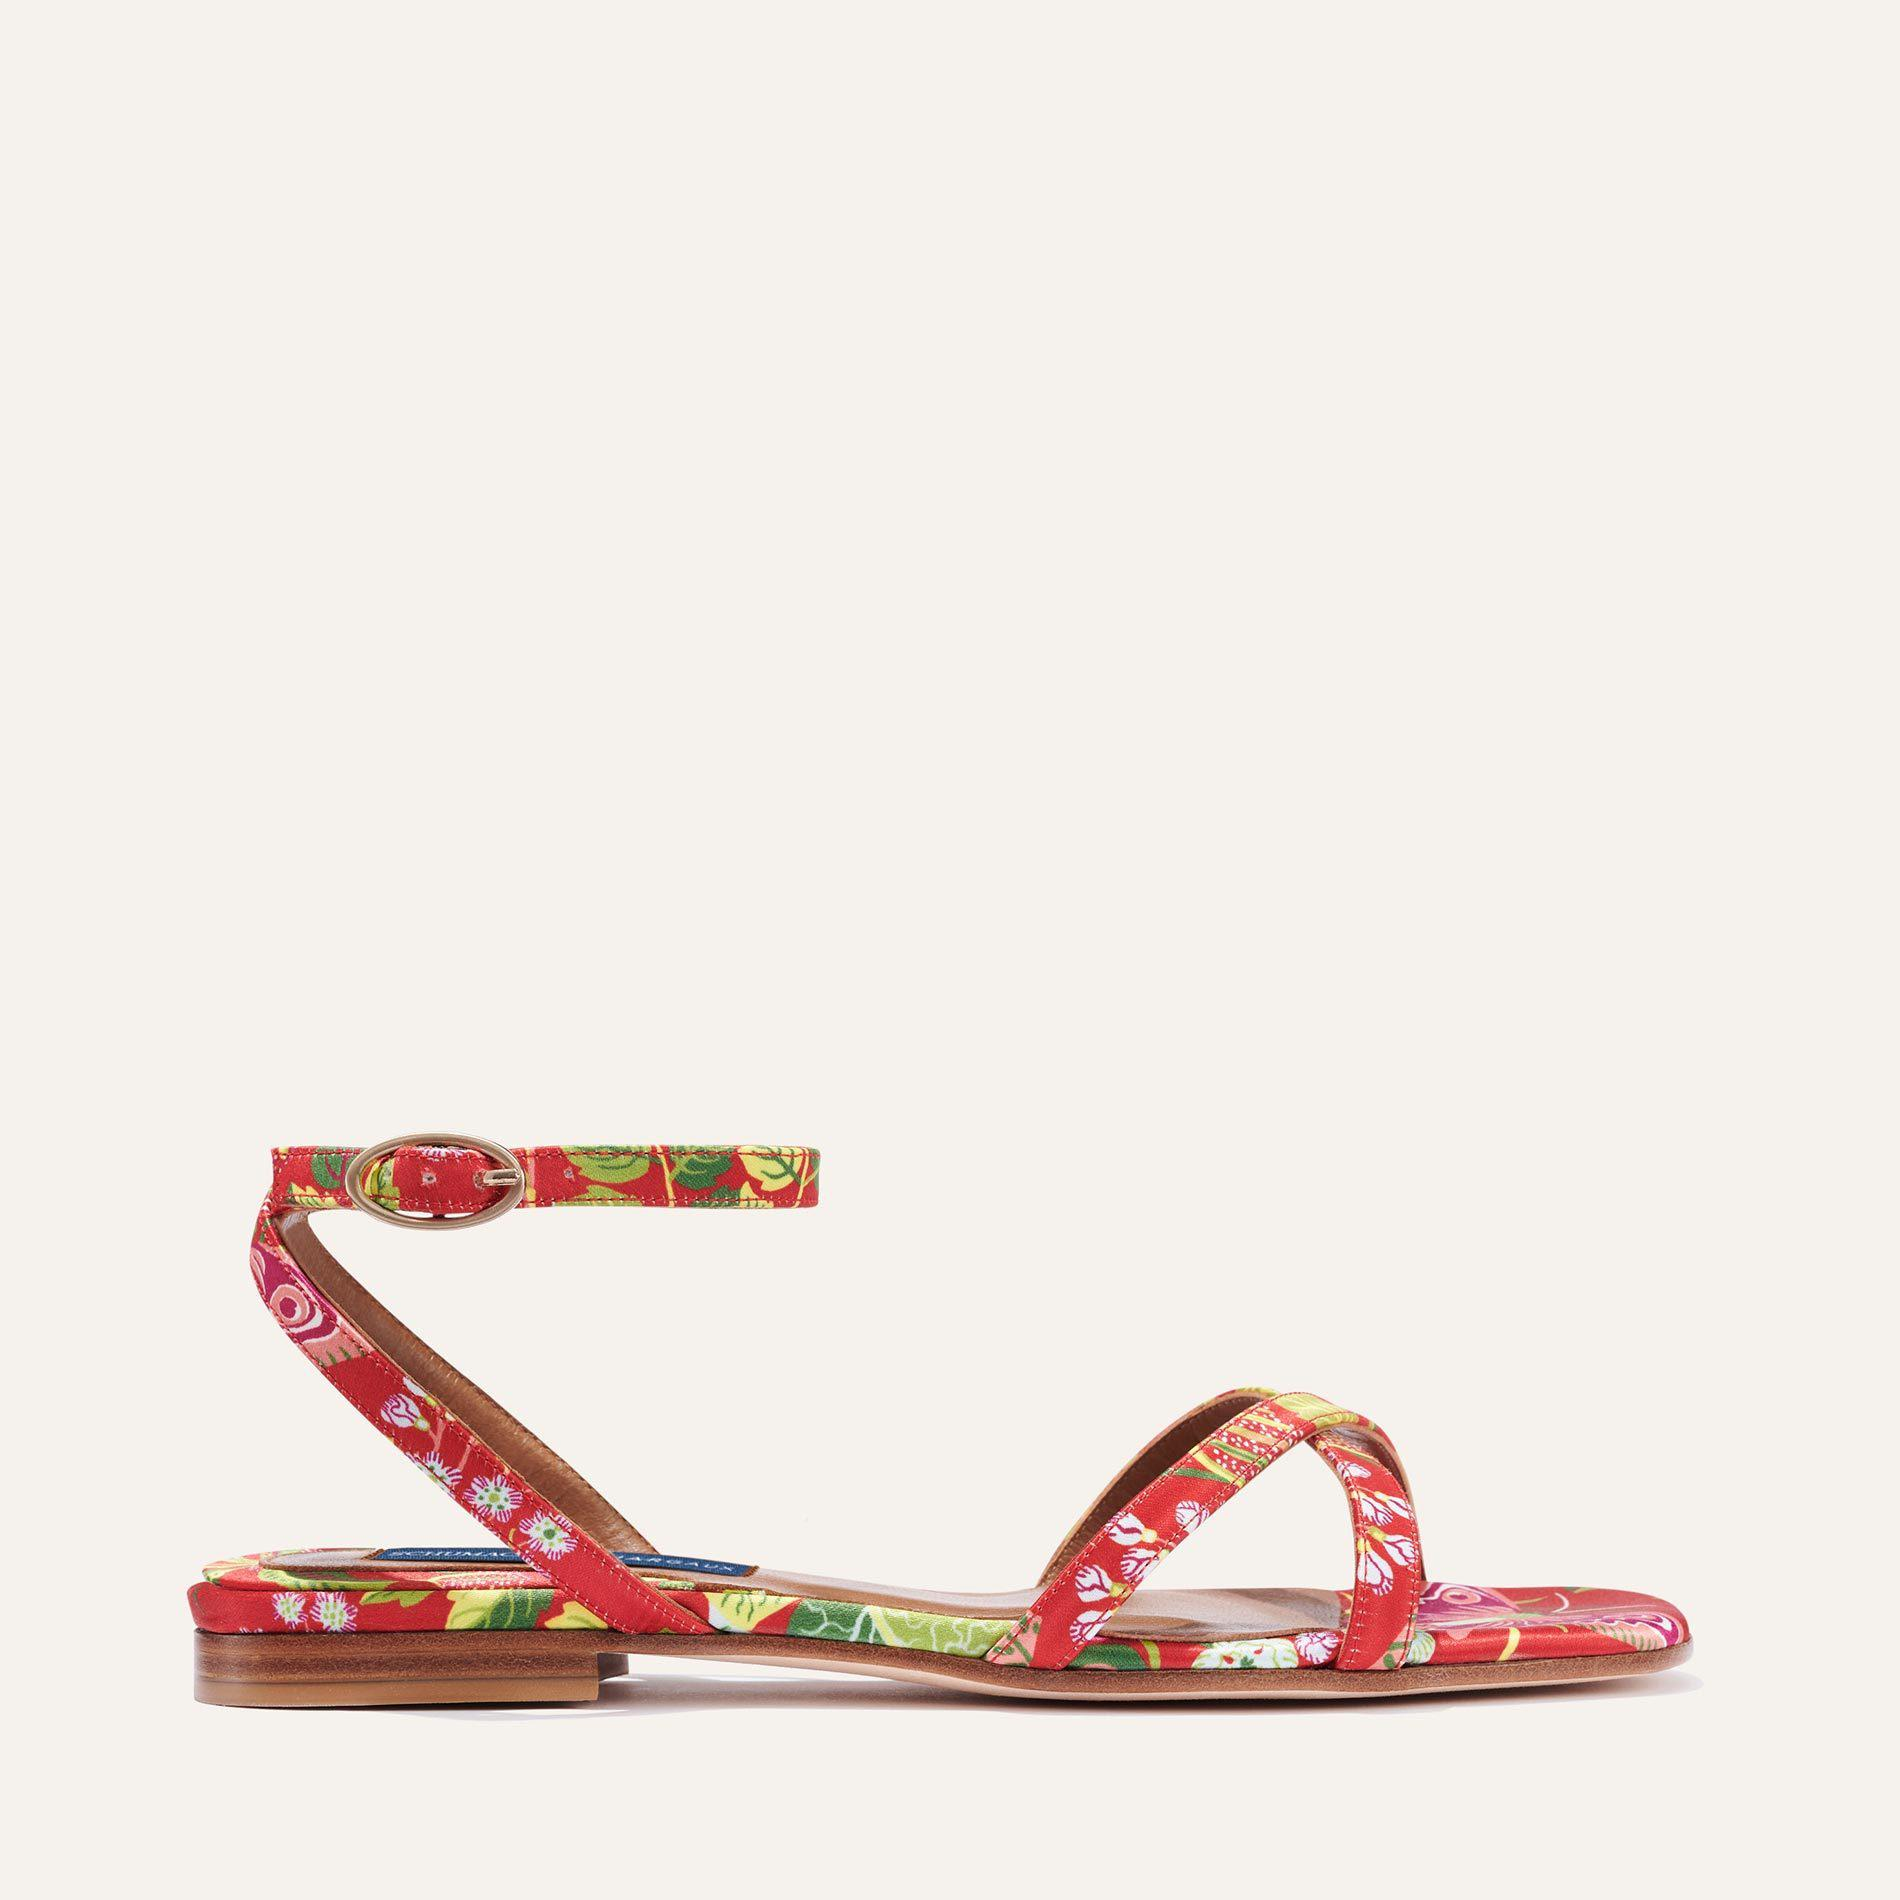 Schumacher x Margaux - The Flat Sandal in Exotic Butterfly